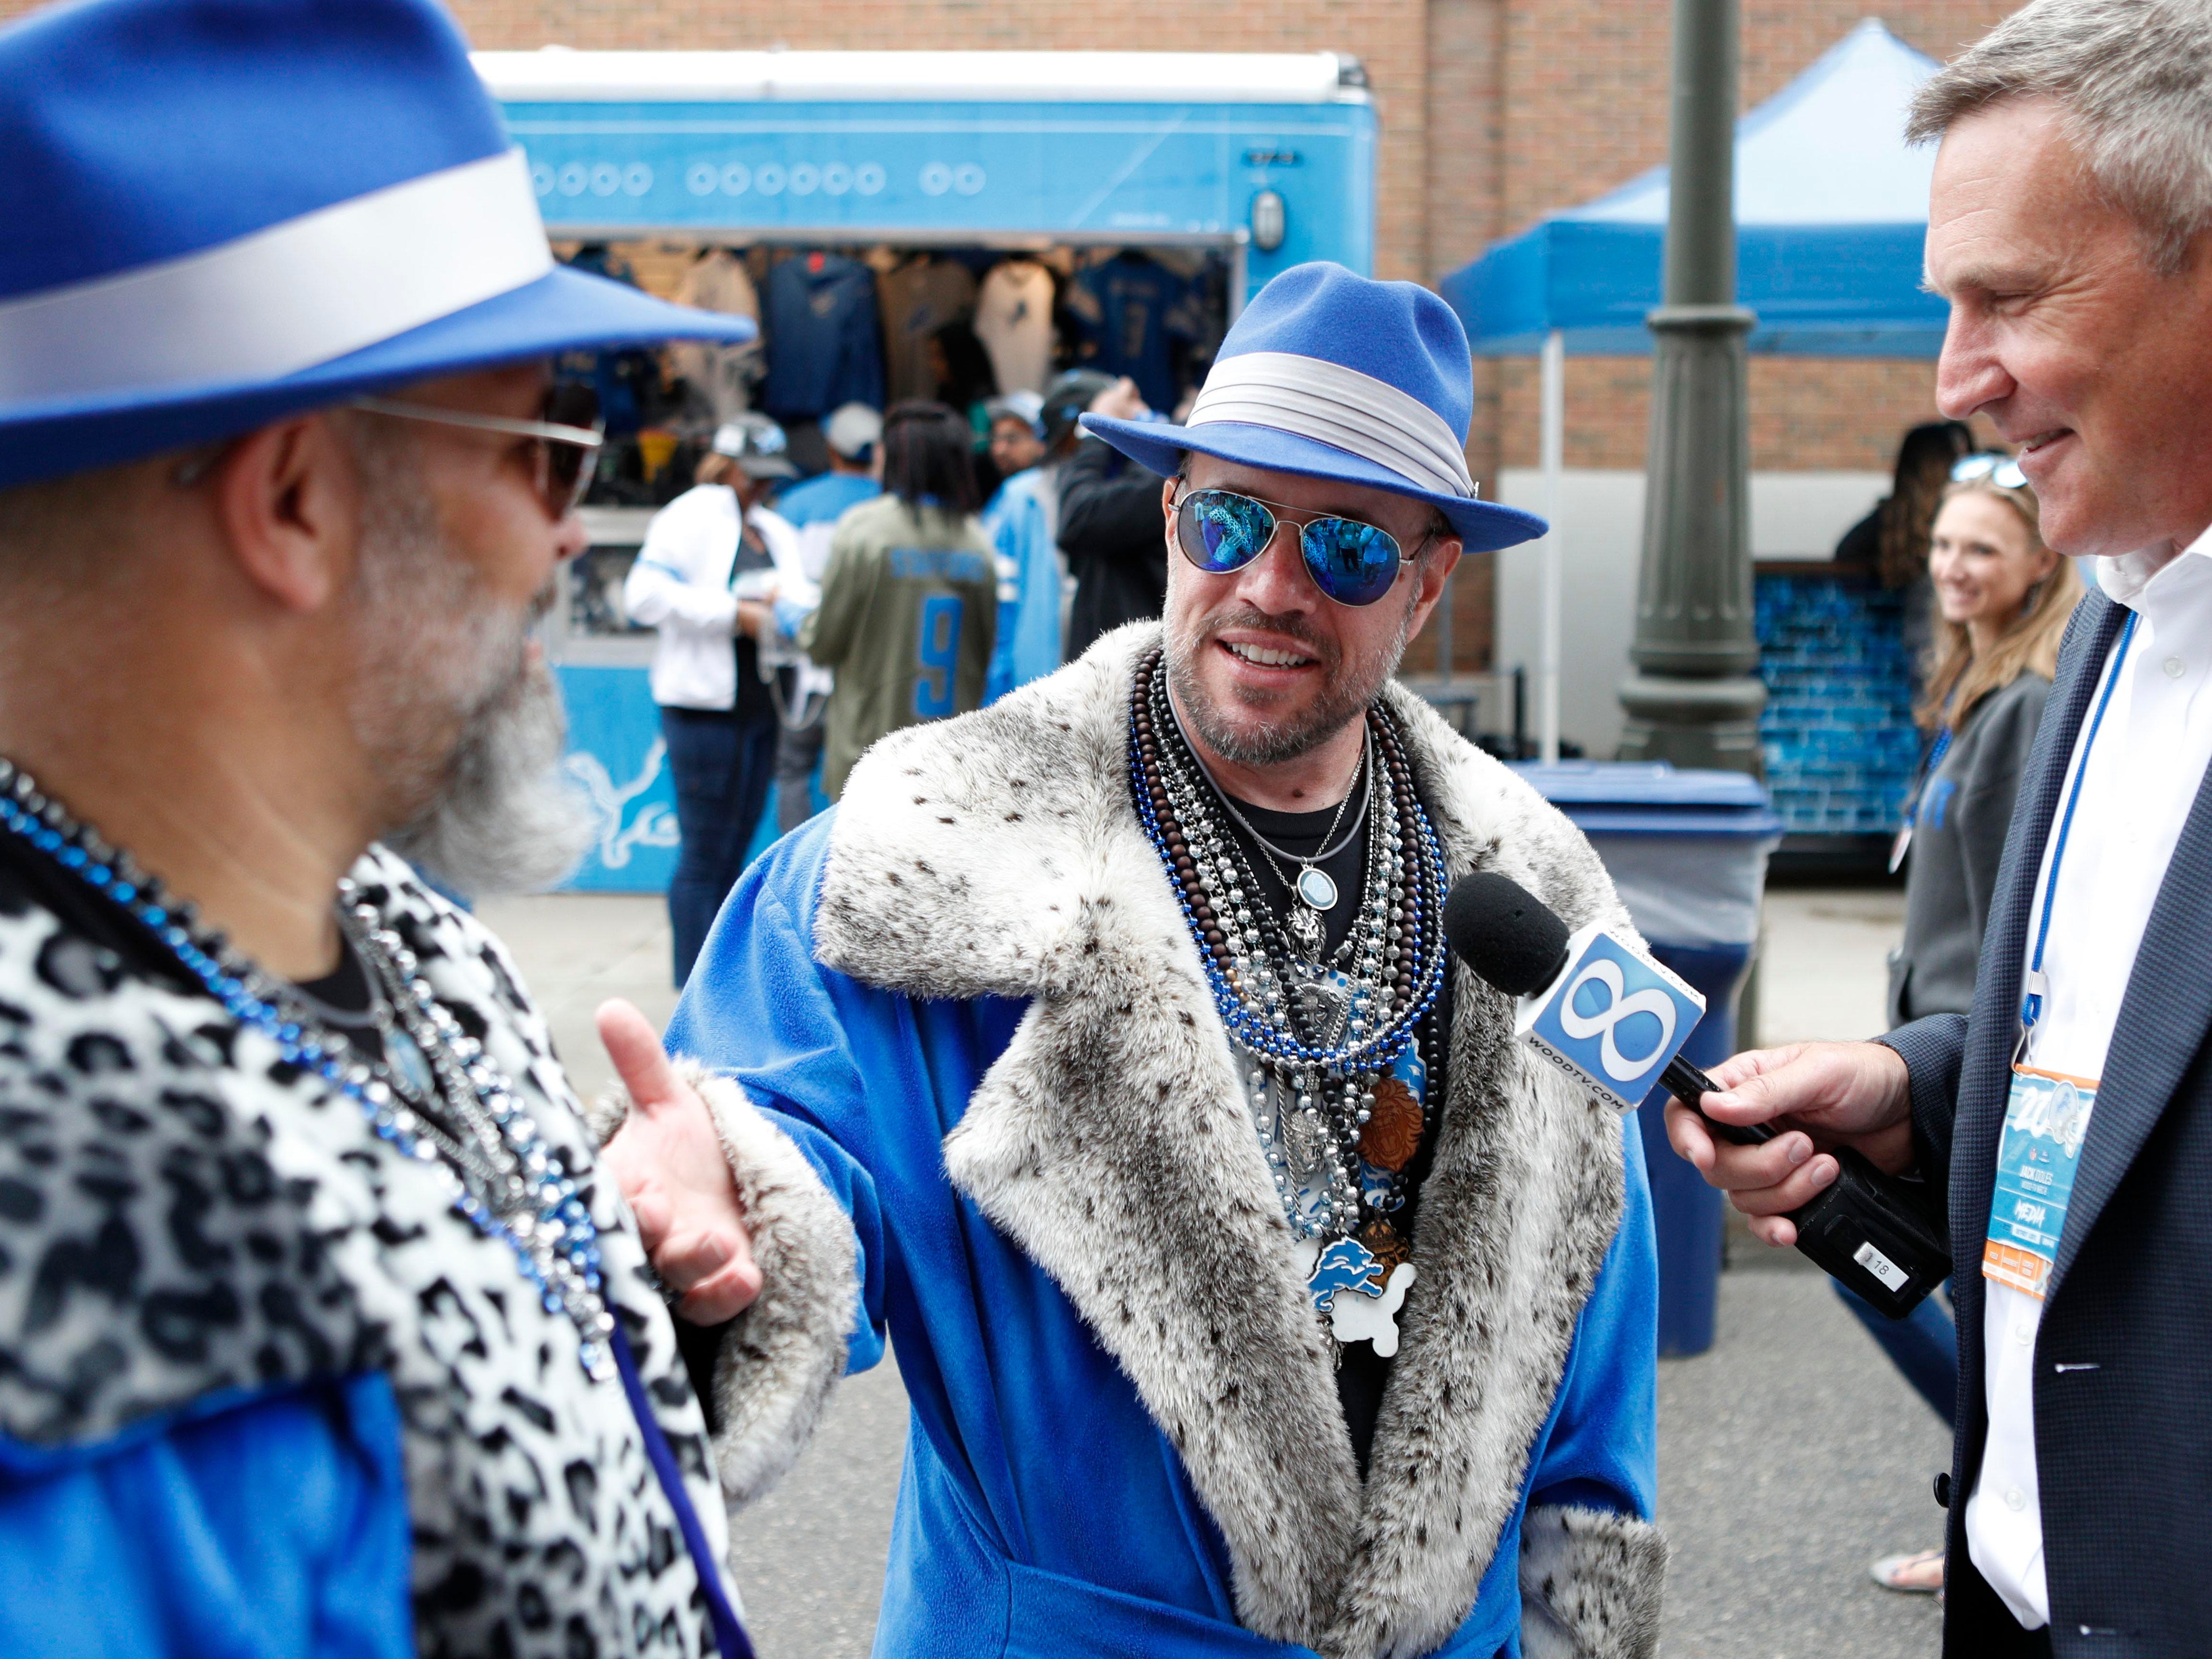 Sep 10, 2018; Detroit, MI, USA; Detroit Lions fans get interviewed by Jack Doles before the game against the New York Jets outside Ford Field. Mandatory Credit: Raj Mehta-USA TODAY Sports